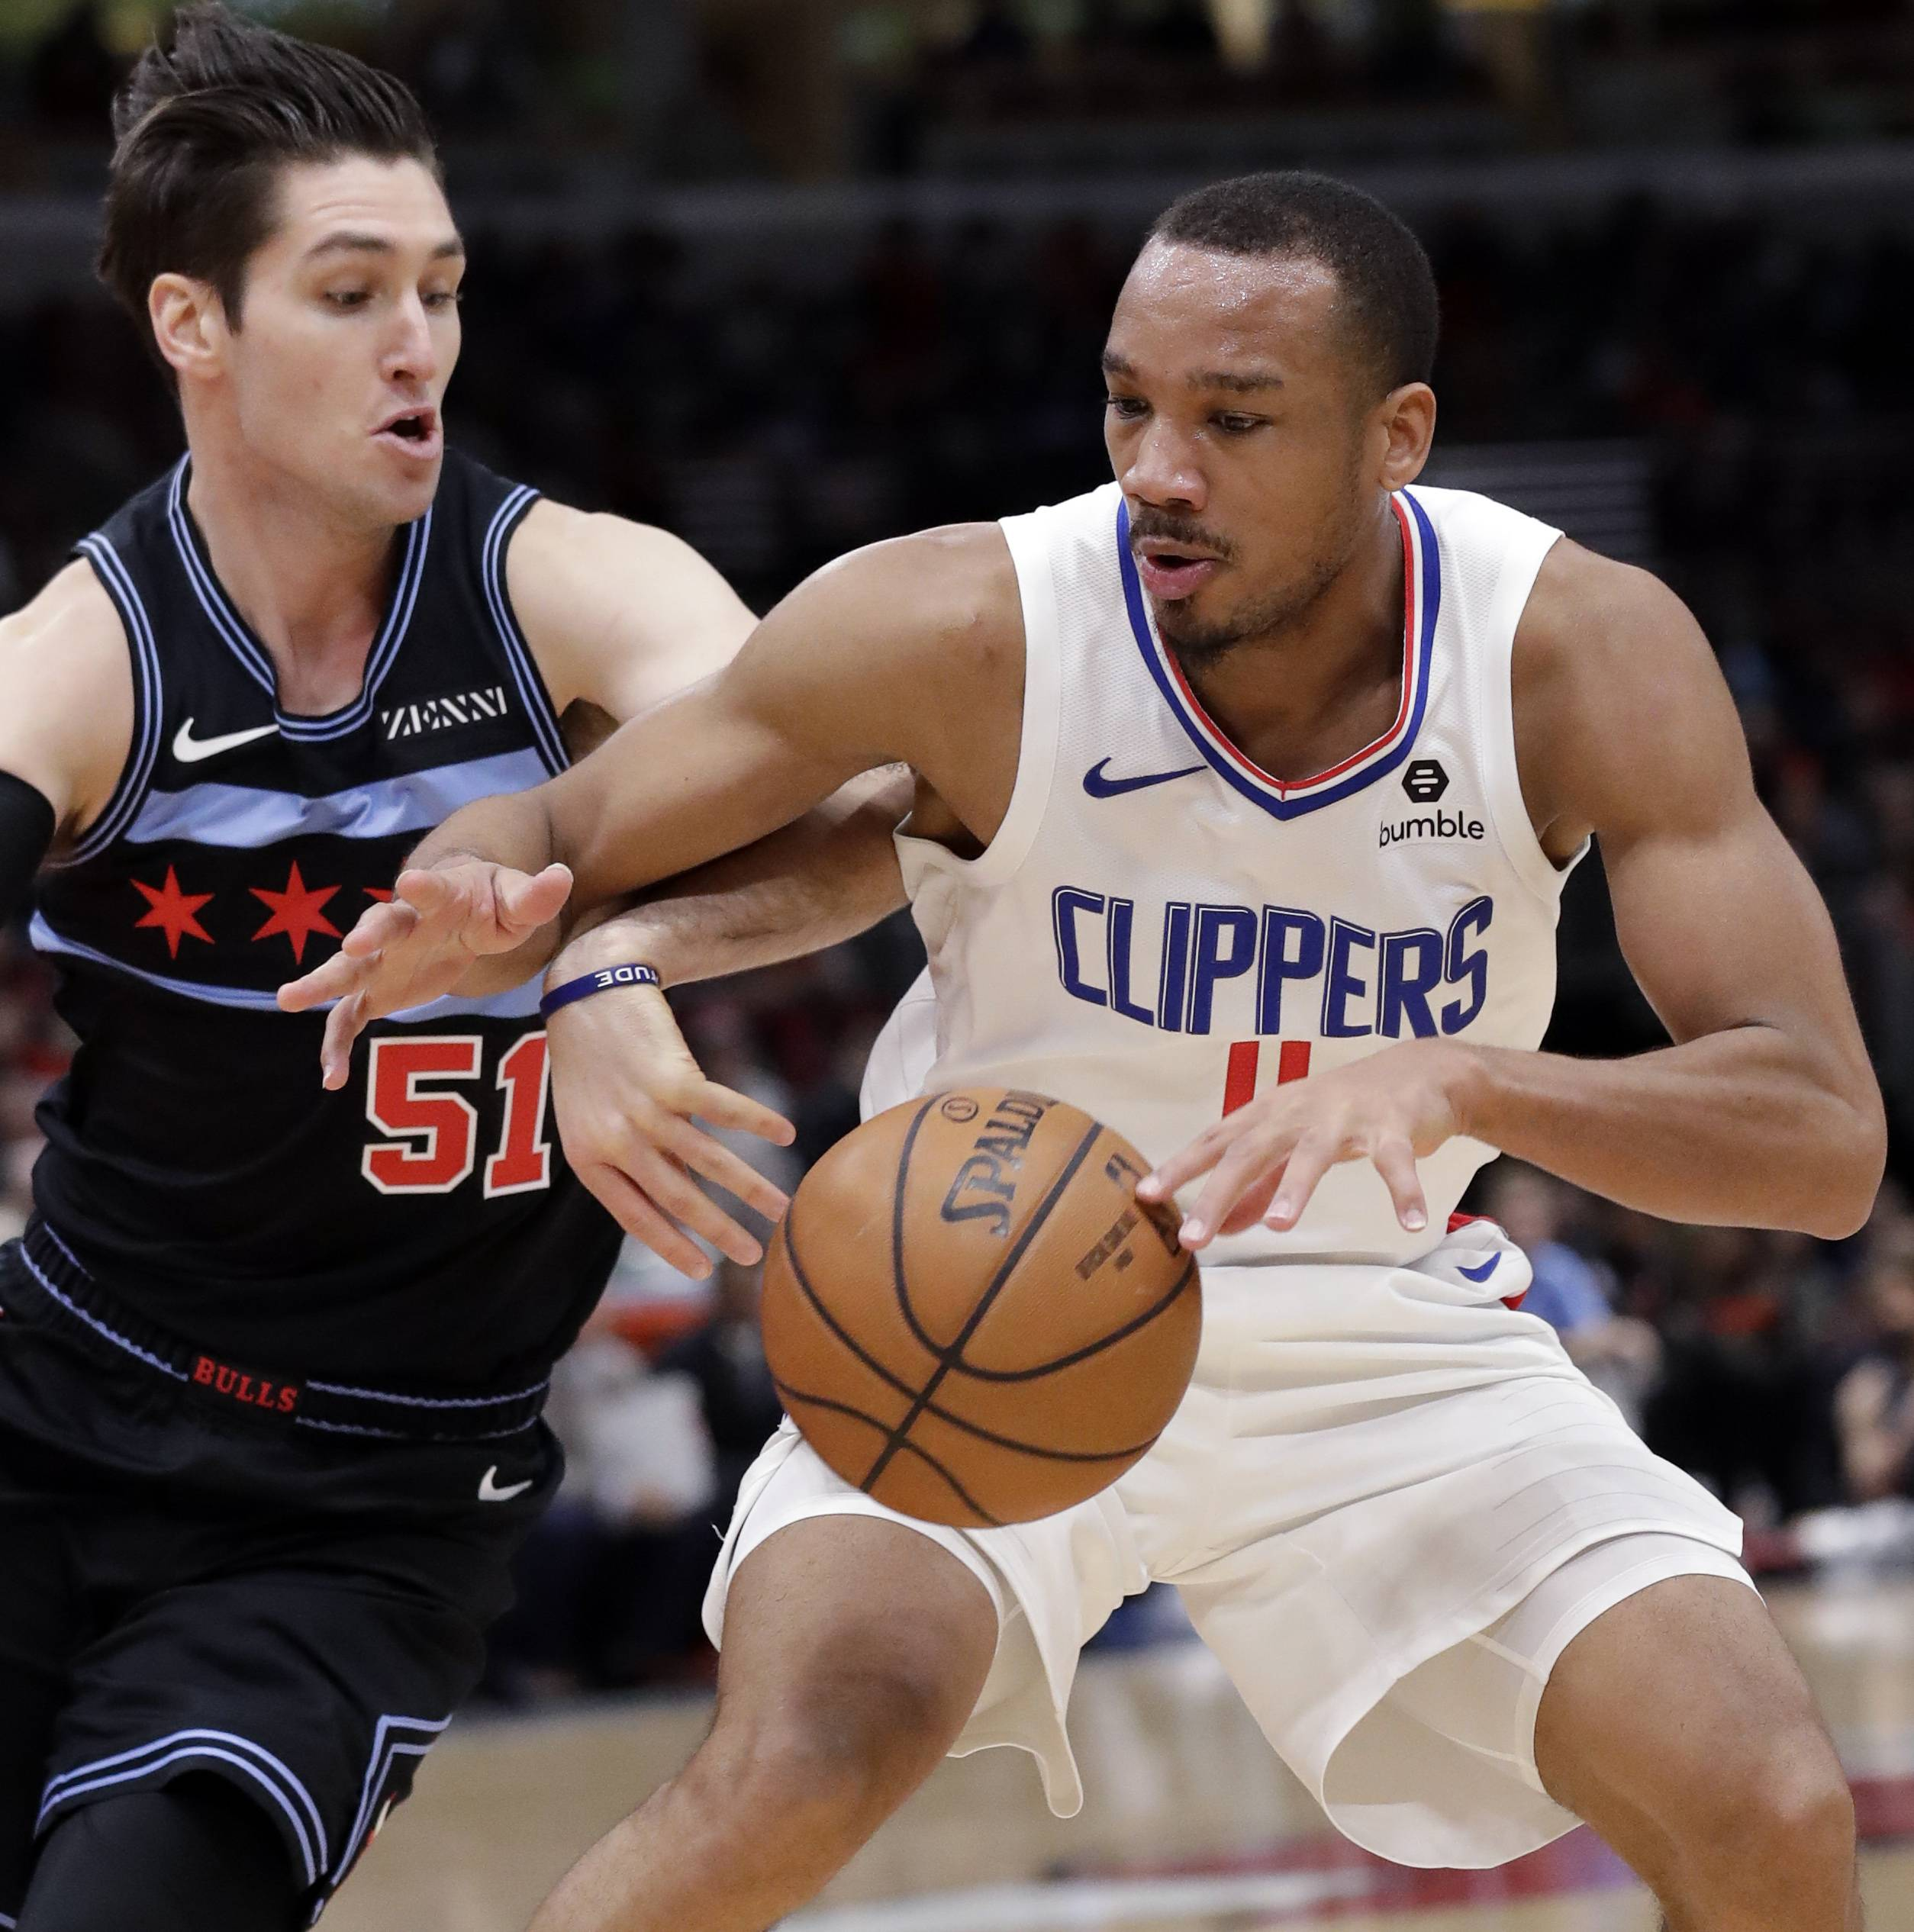 Rush-hour snow storm leaves Clippers running late